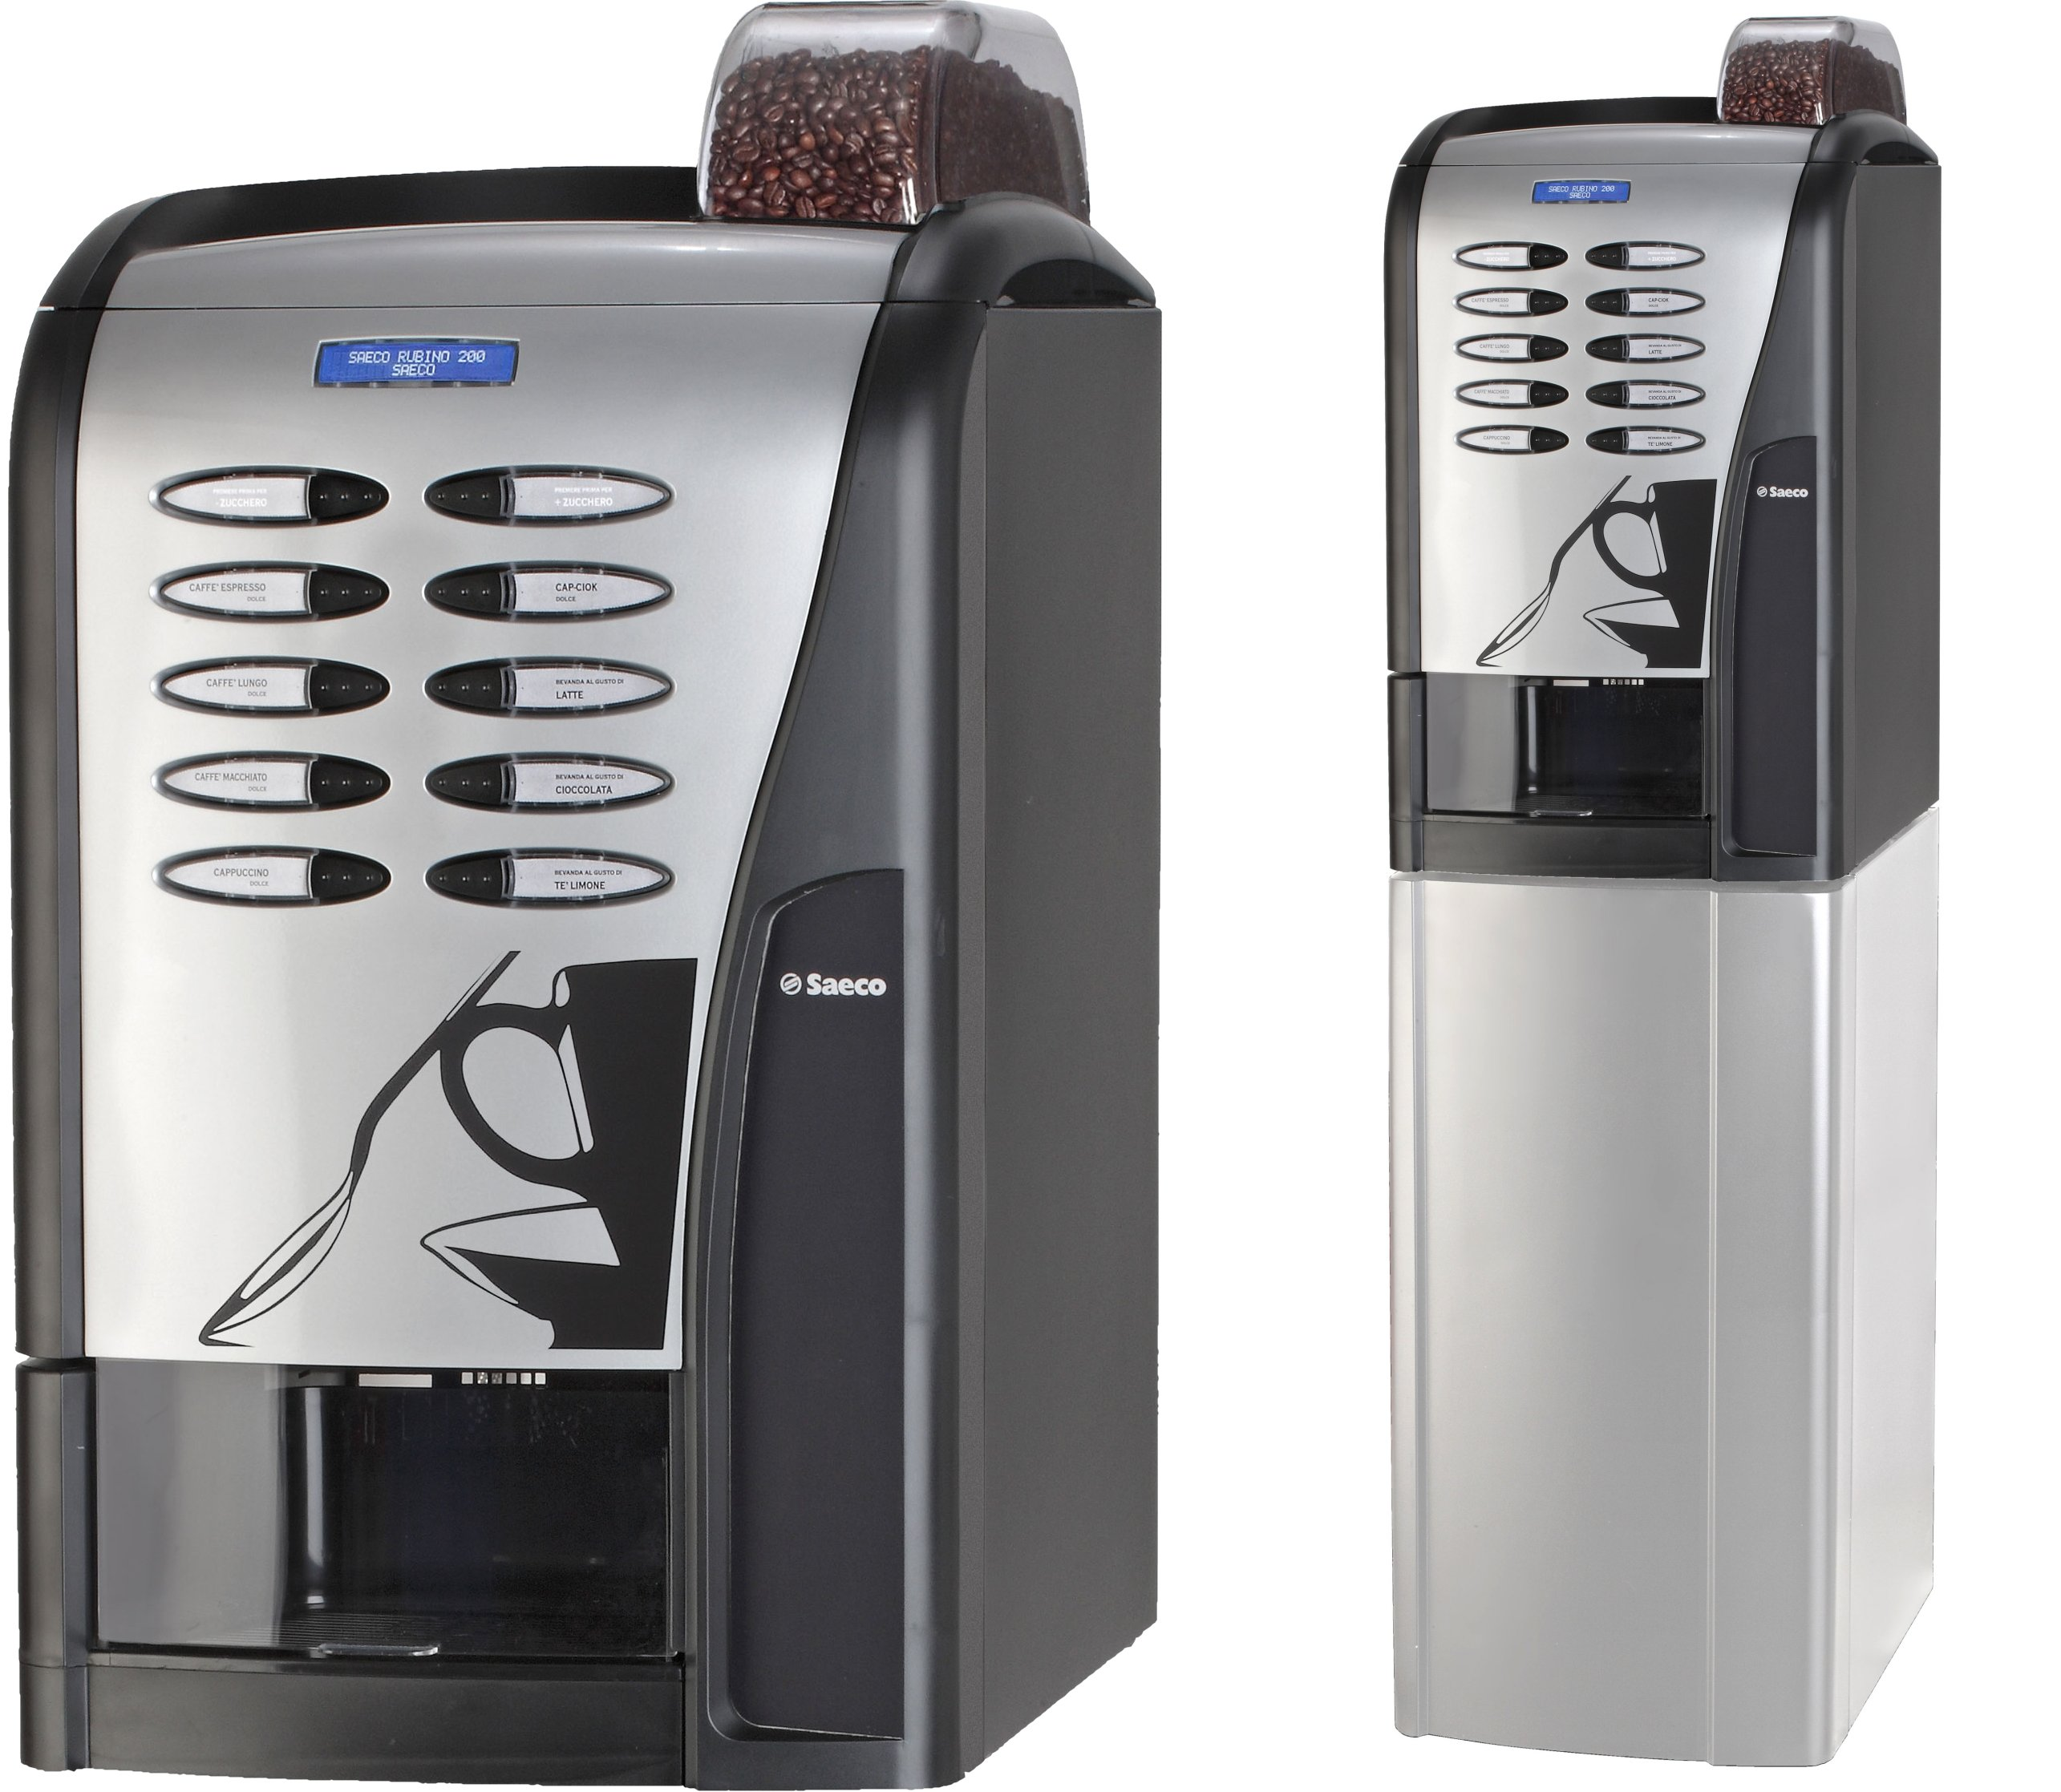 saeco rubino 200 coffee machine review. Black Bedroom Furniture Sets. Home Design Ideas